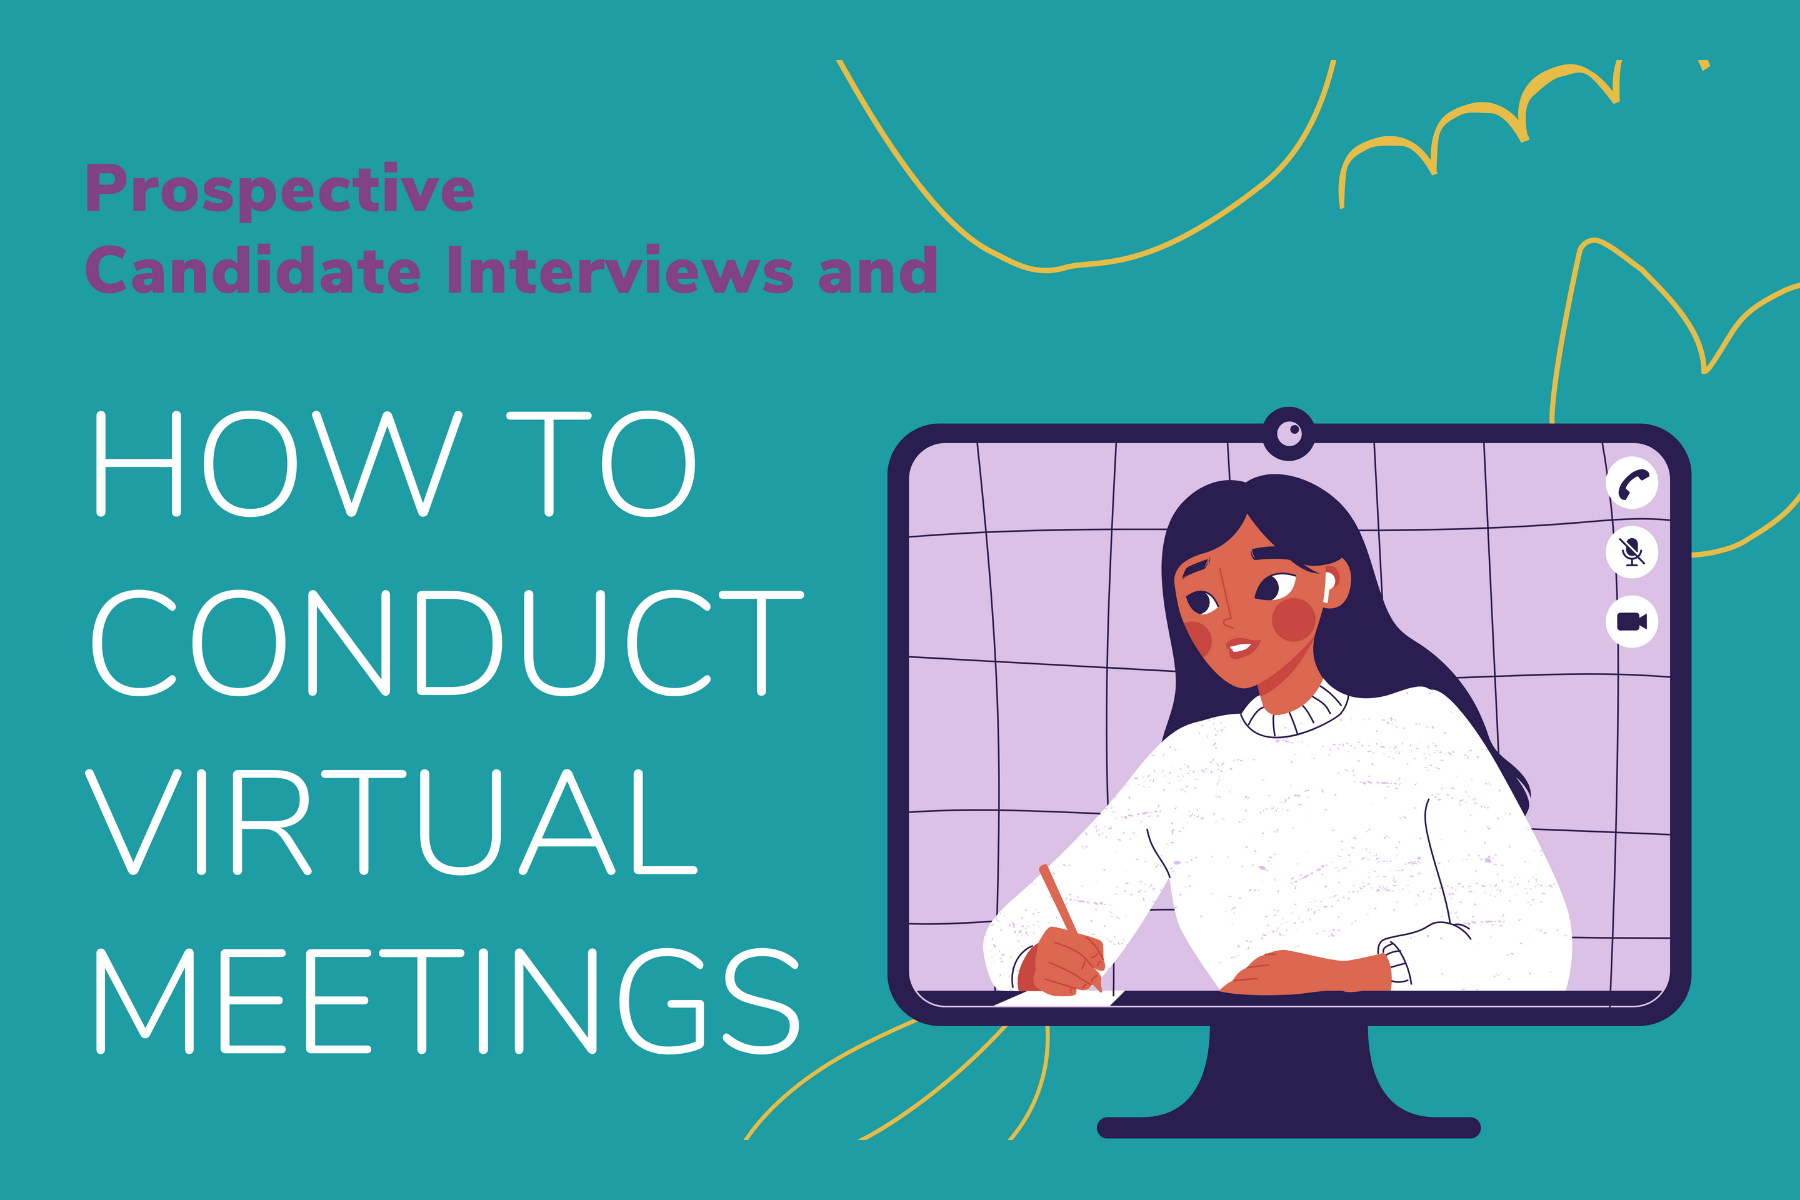 How to Conduct Virtual Meetings